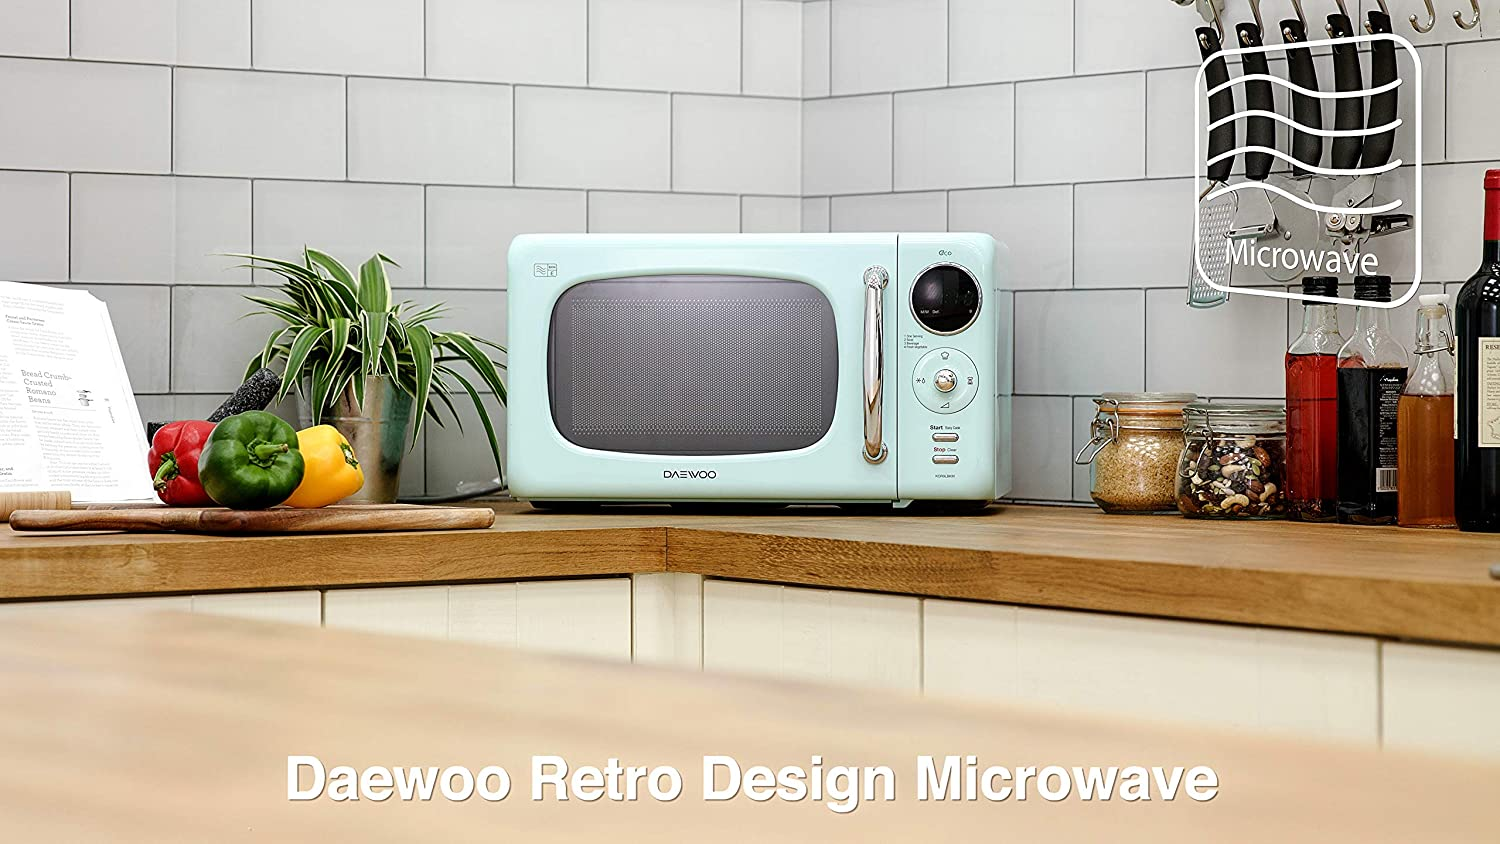 Daewoo KOR9LBKMR Touch Control Microwave with Zero Standby ECO Function, 800 W, 20 Litre, Green Green